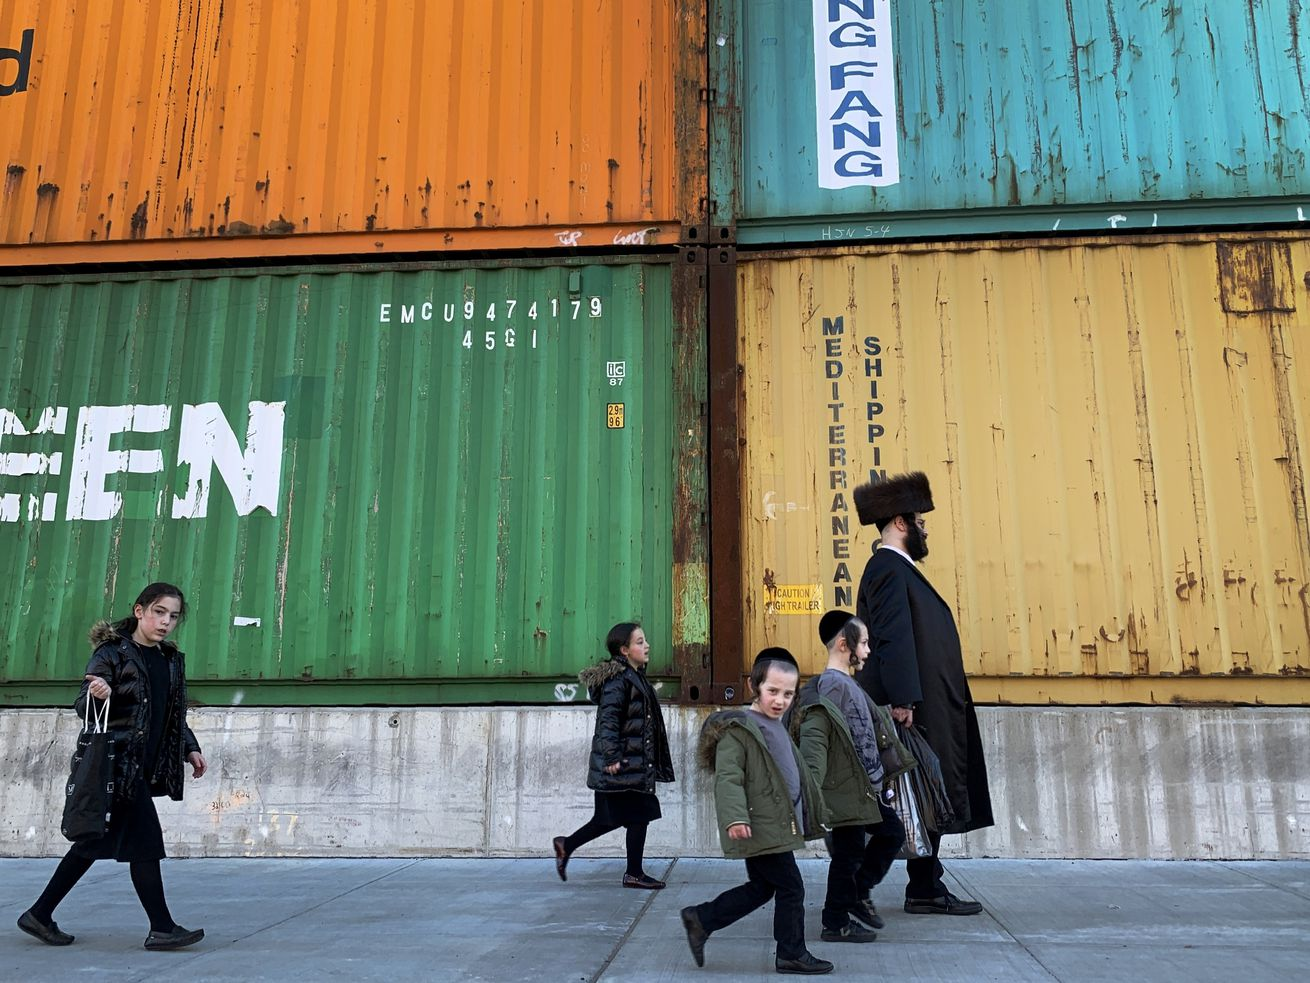 In this Tuesday, March 30, 2021 file photo, members of the Orthodox Jewish community walk past shipping containers in the South Williamsburg neighborhood of Brooklyn, New York.